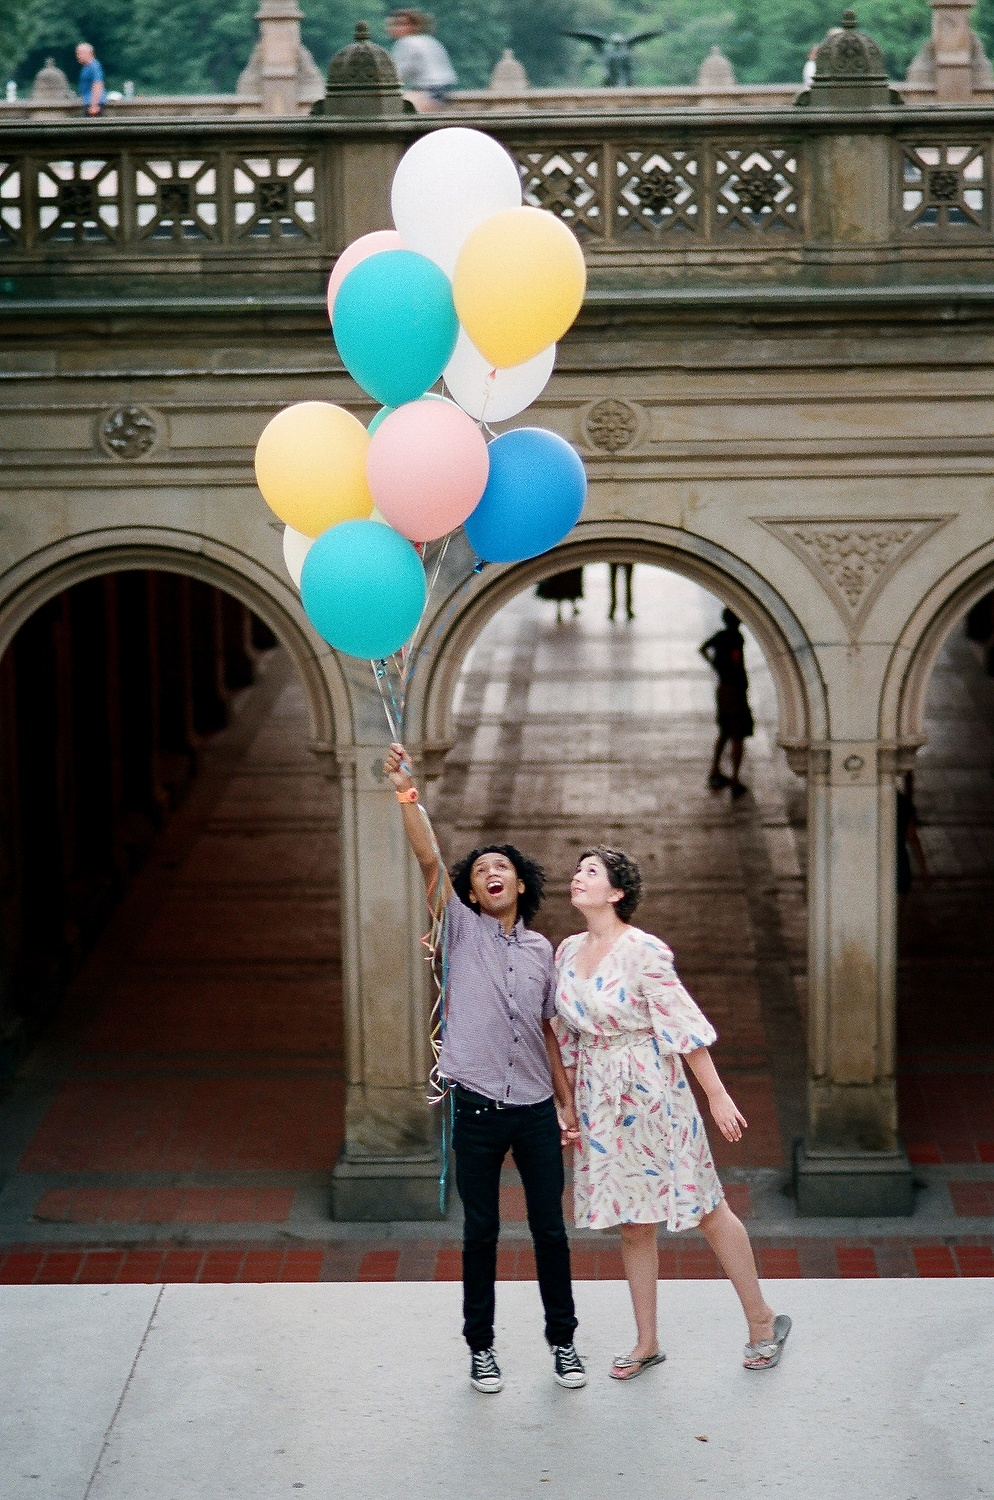 couple being carried away by balloons